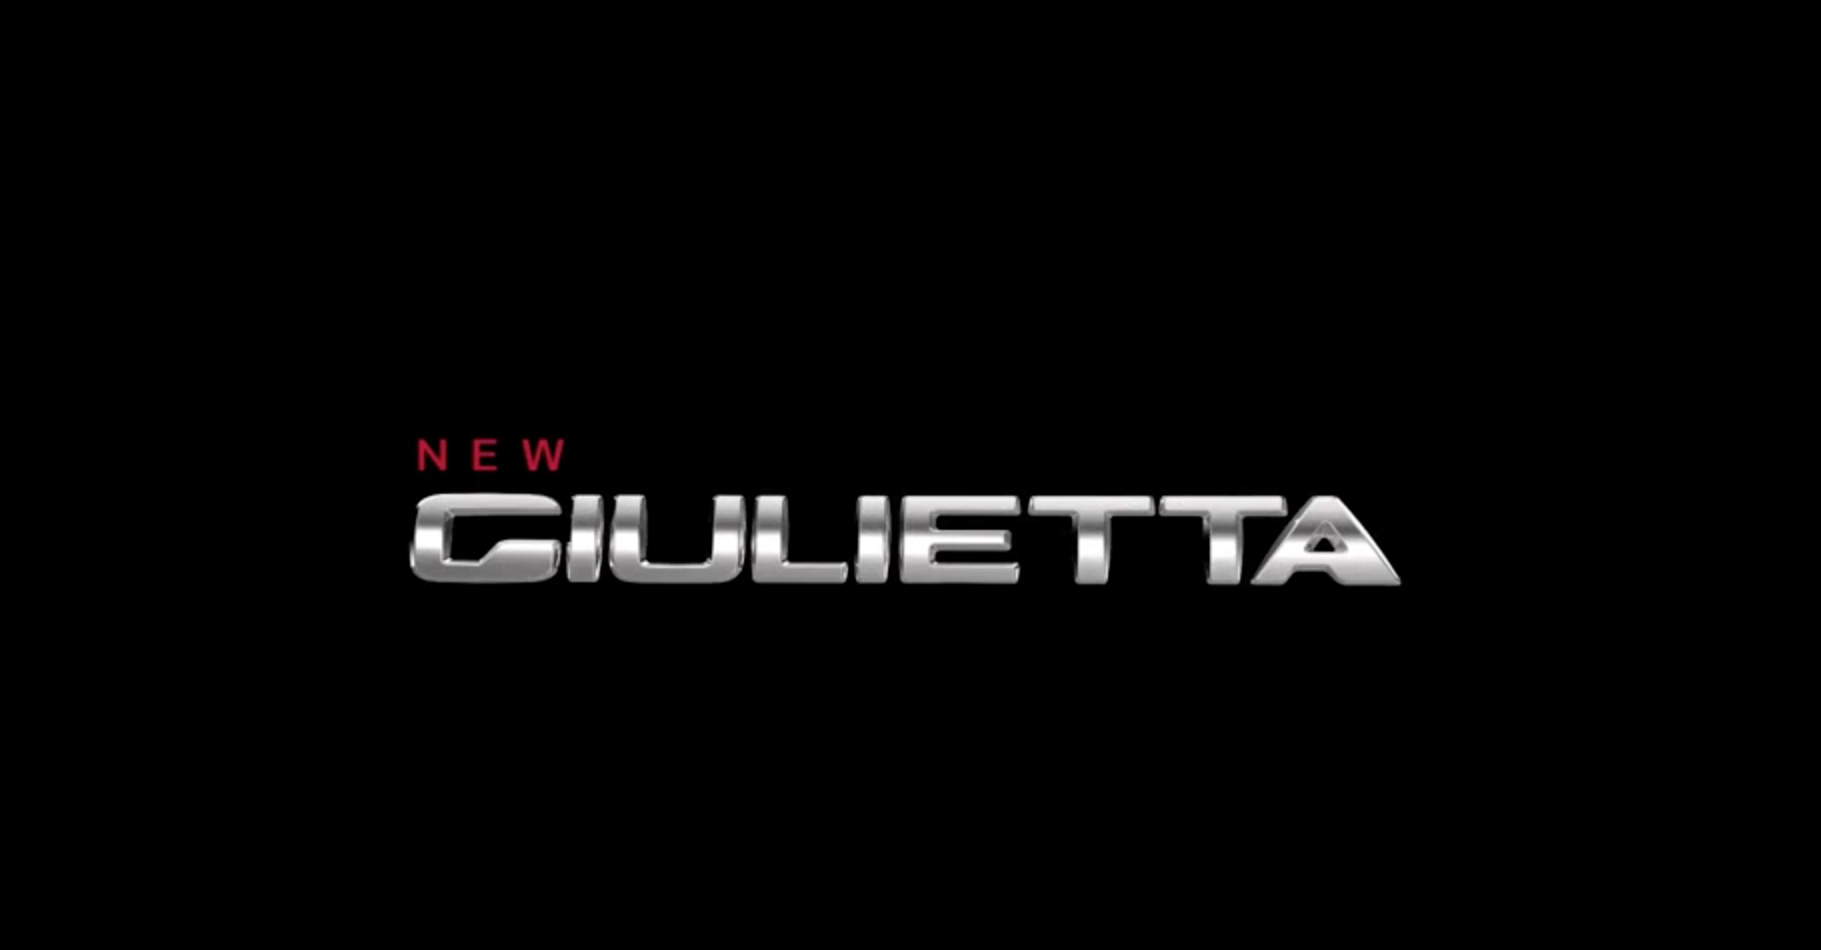 A simultaneous European reveal for New Giulietta